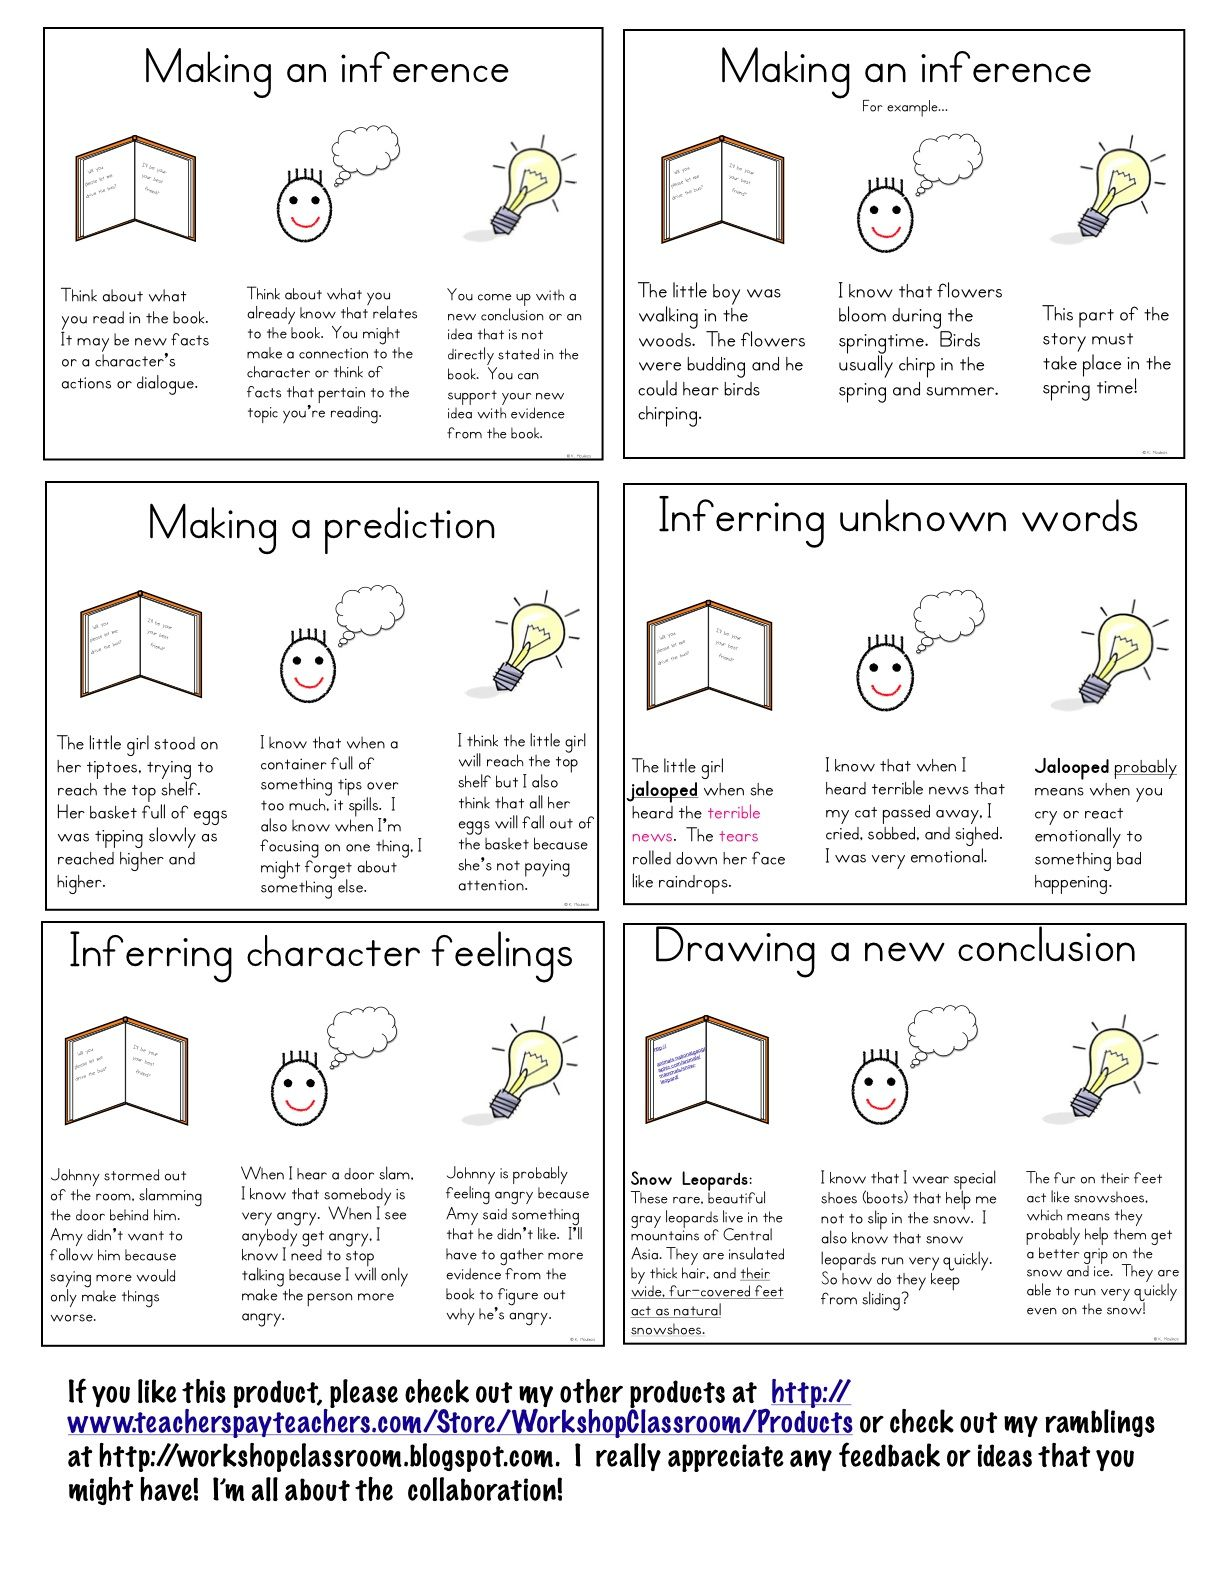 Worksheets 3rd Grade Inferencing Worksheets workshop classroom making inferences mini lessons reading lessons